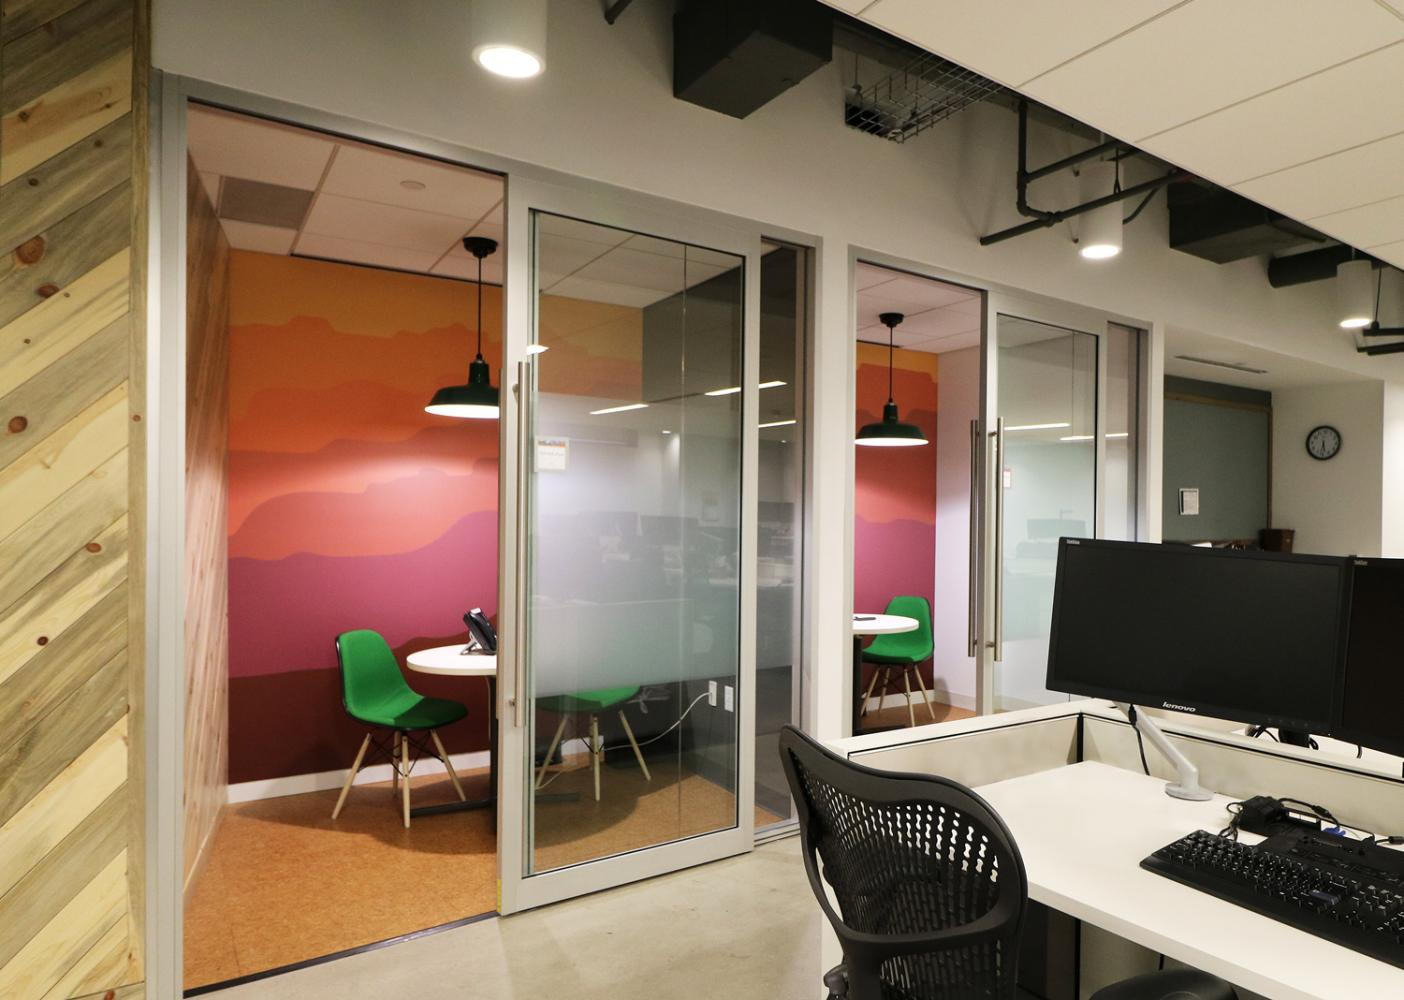 Expedia Collaboration Rooms Commercial Construction Denver Colorado